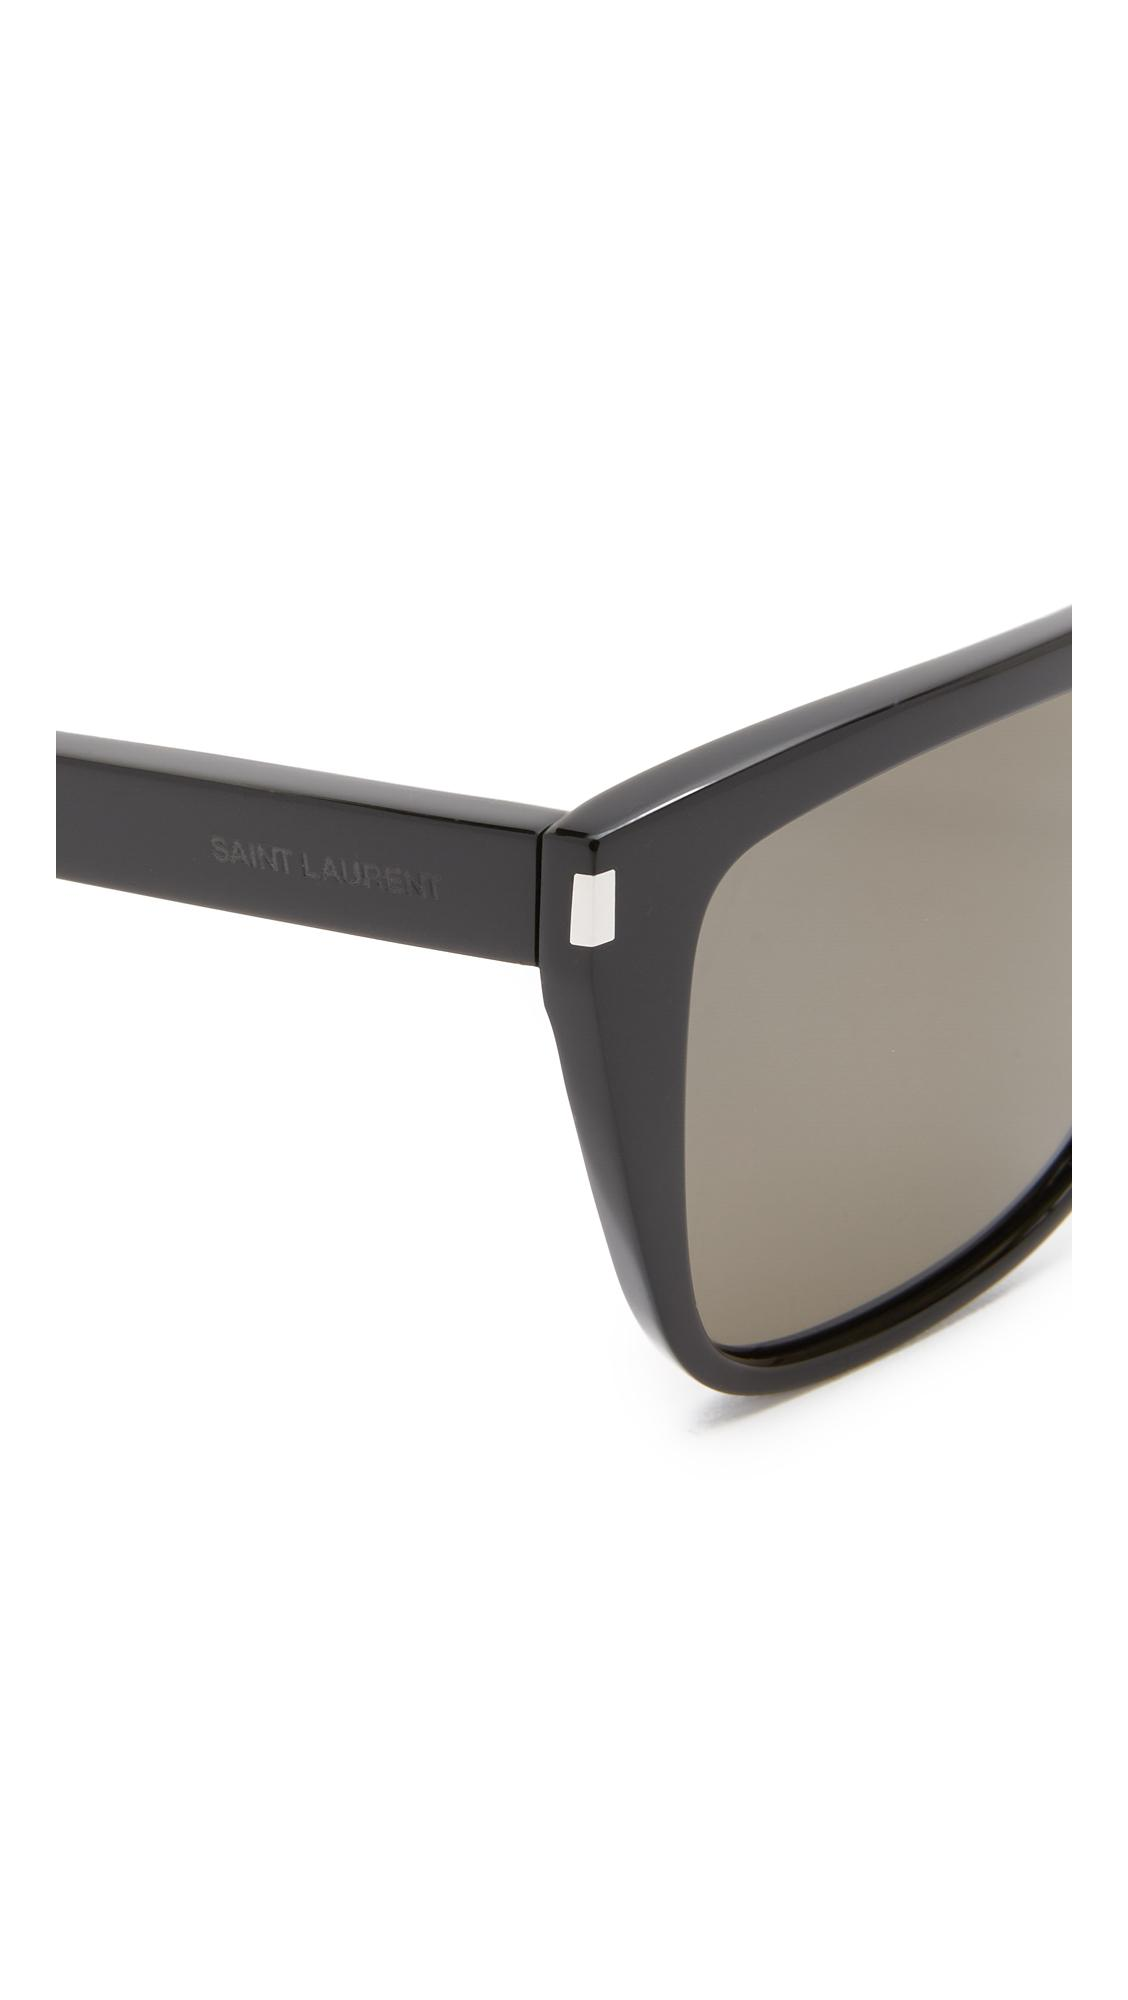 259bb802756 Saint Laurent Sl 1 Mineral Glass Sunglasses in Black - Lyst